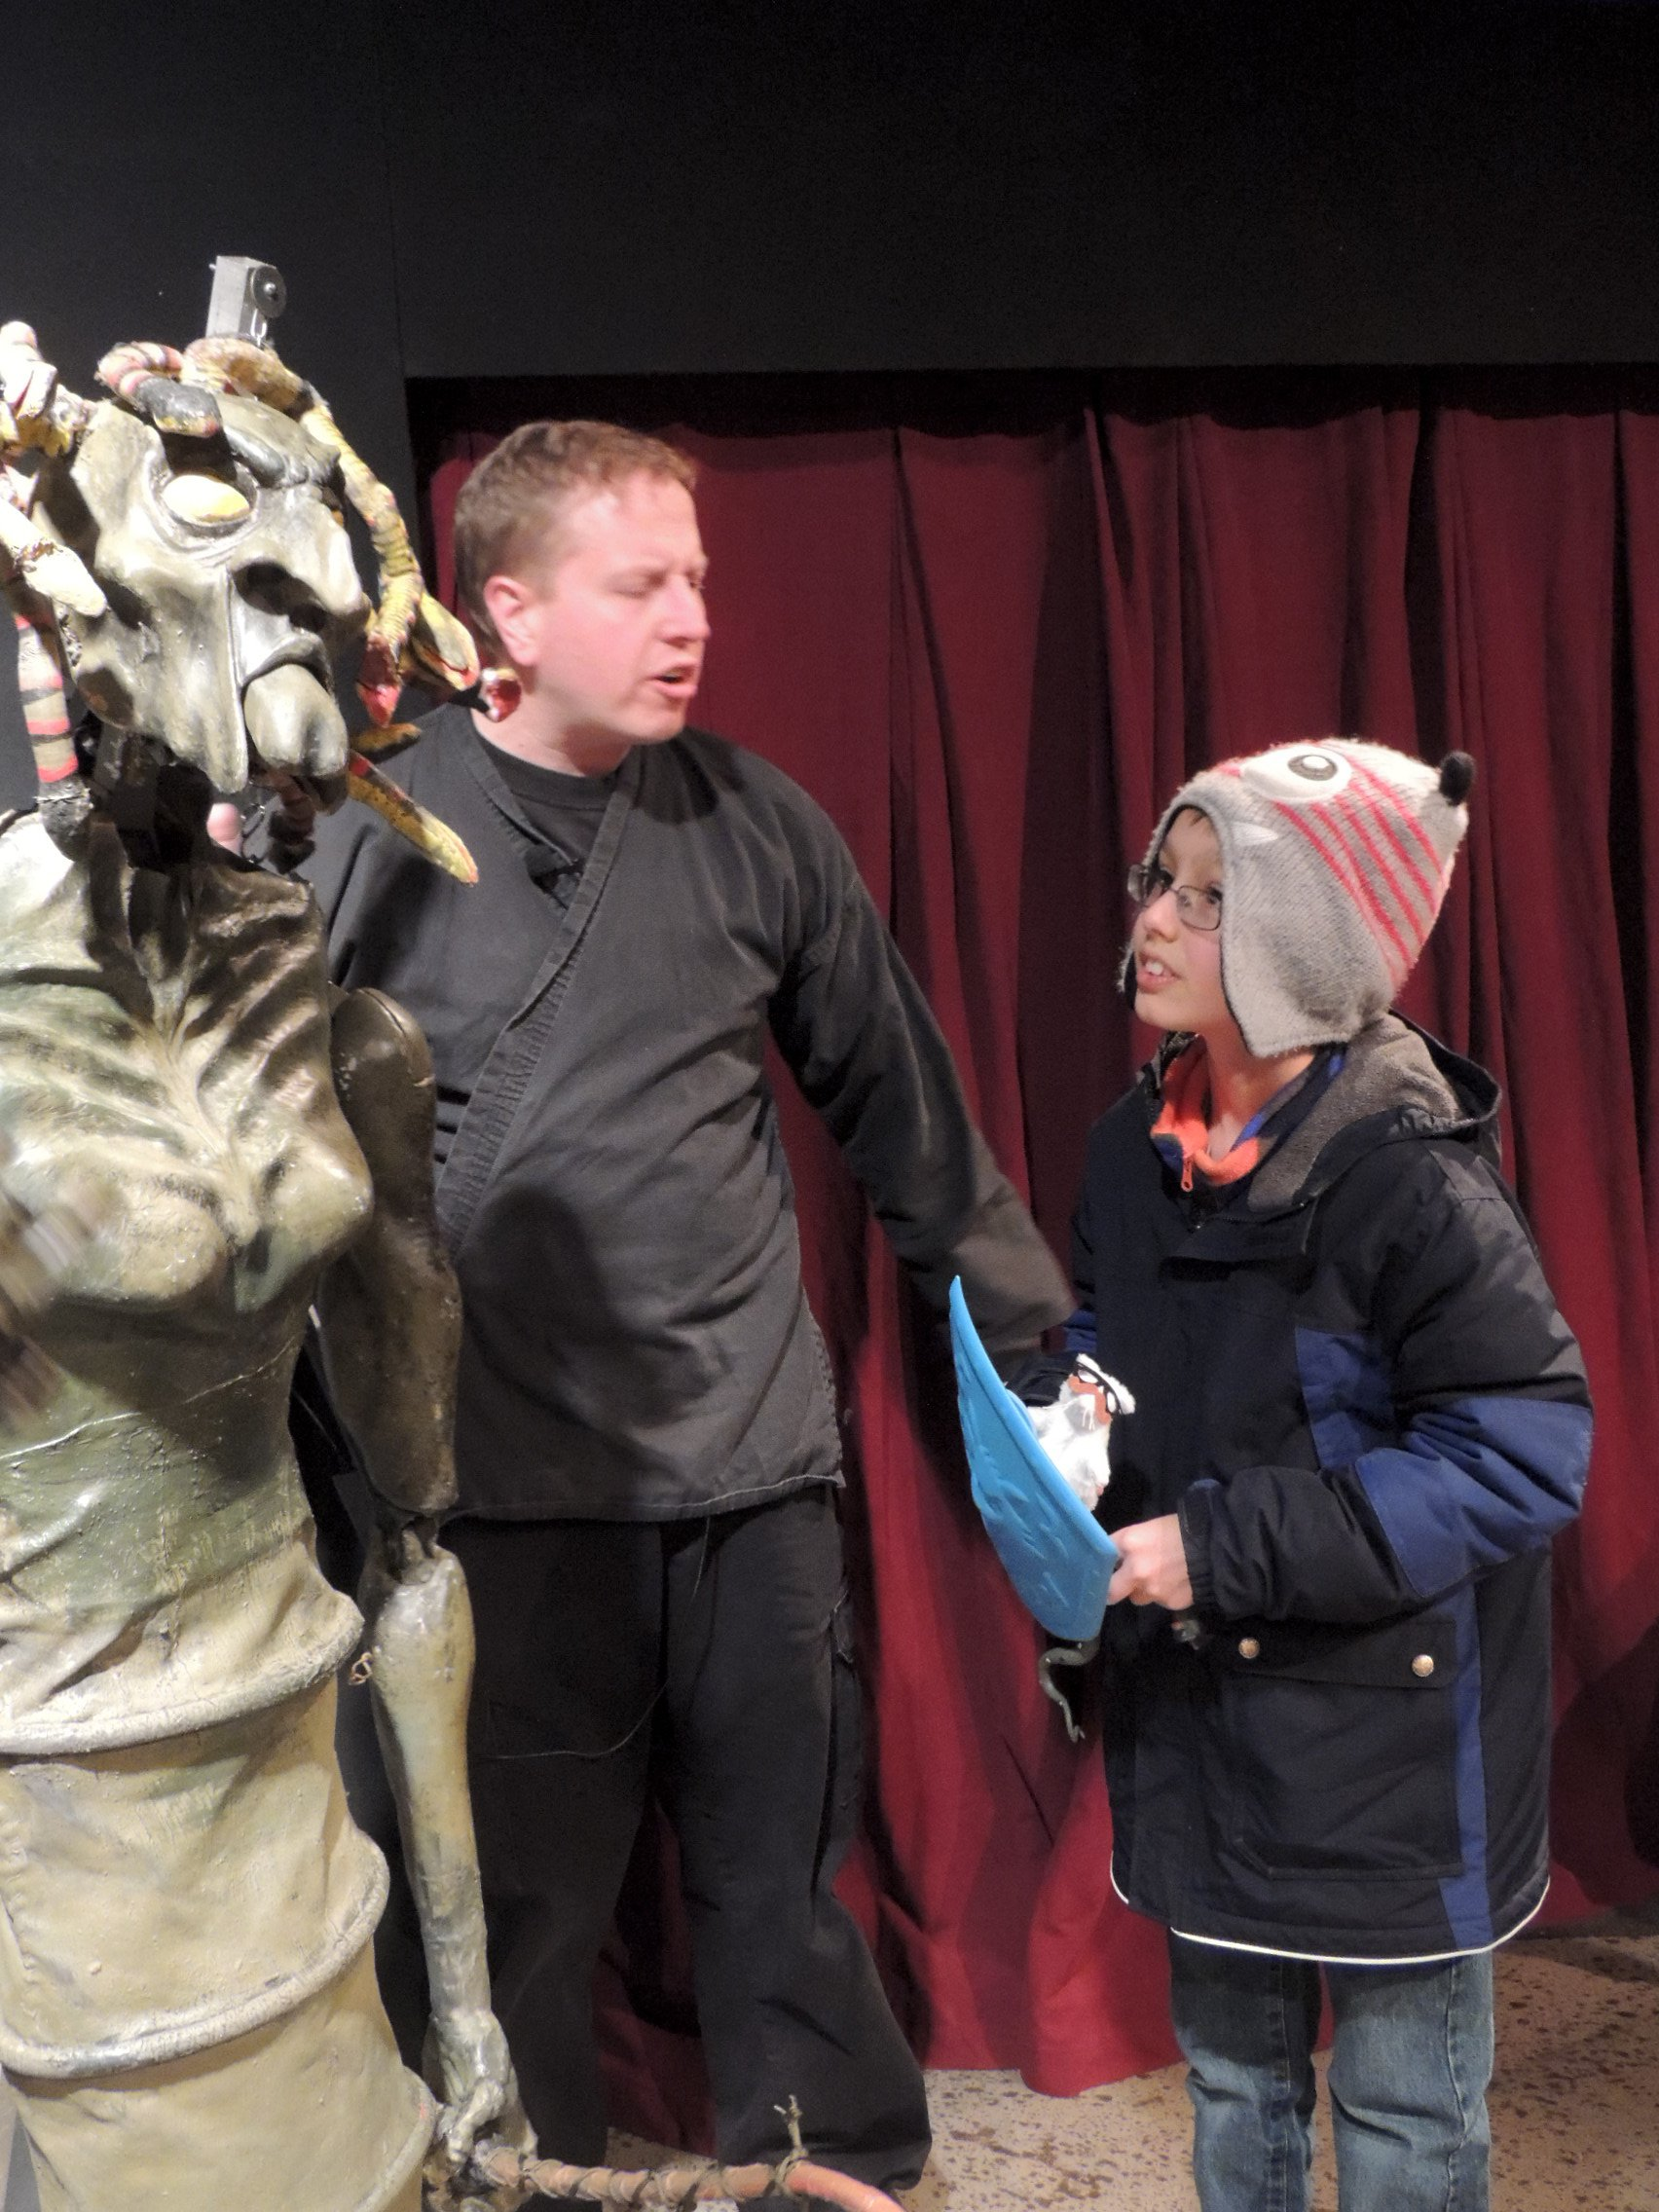 A large puppet on stage with its puppeteer and a member of the audience.